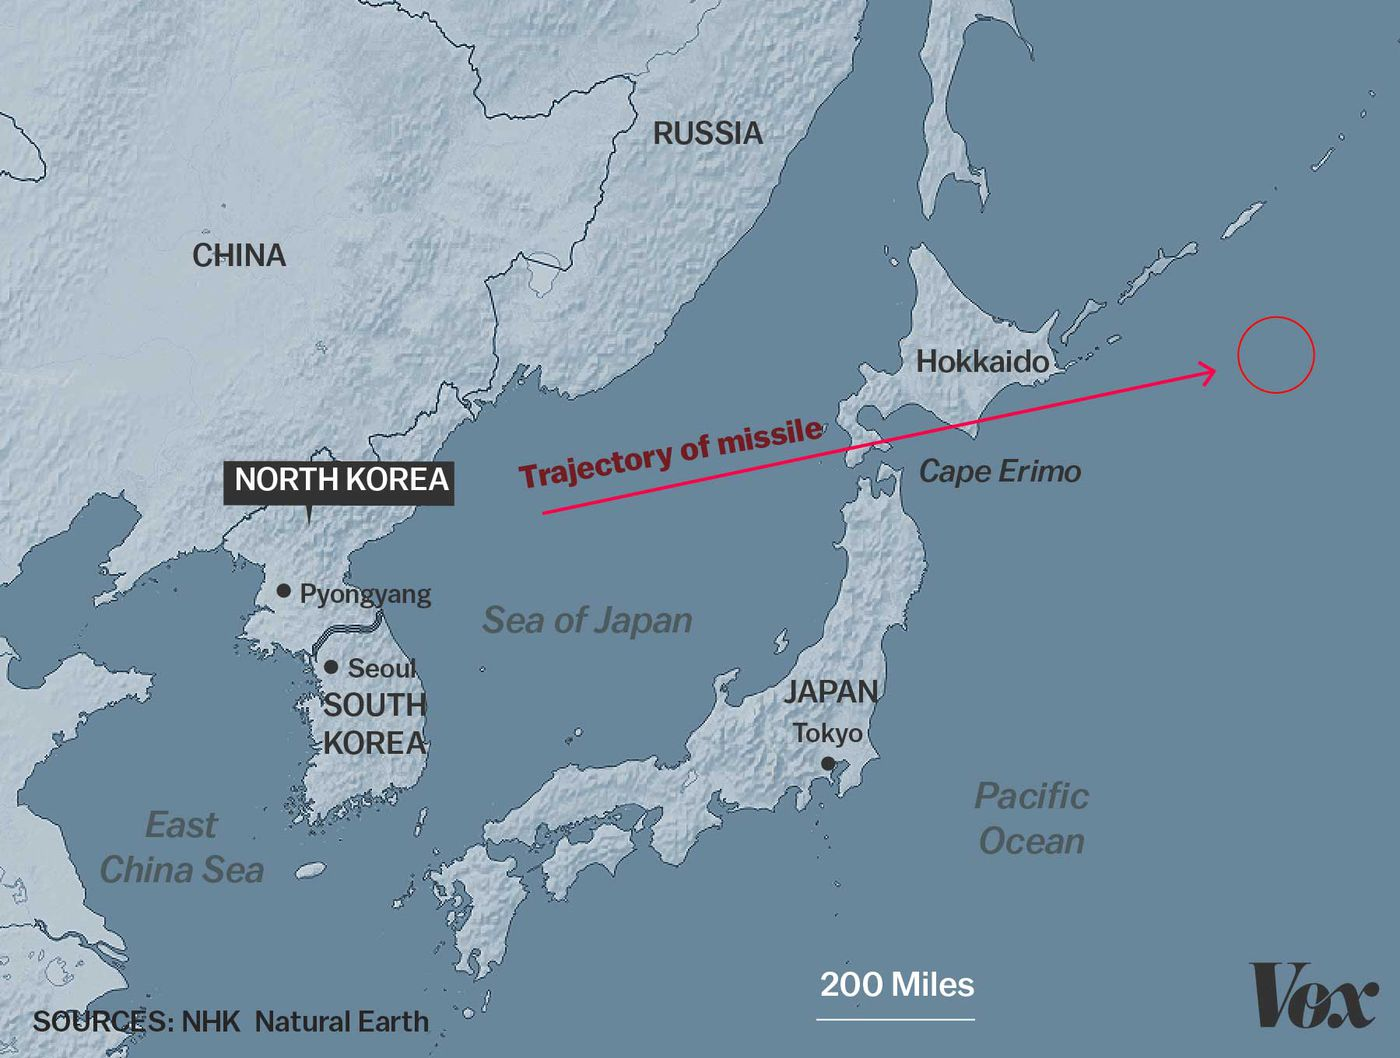 40 maps that explain North Korea - Vox